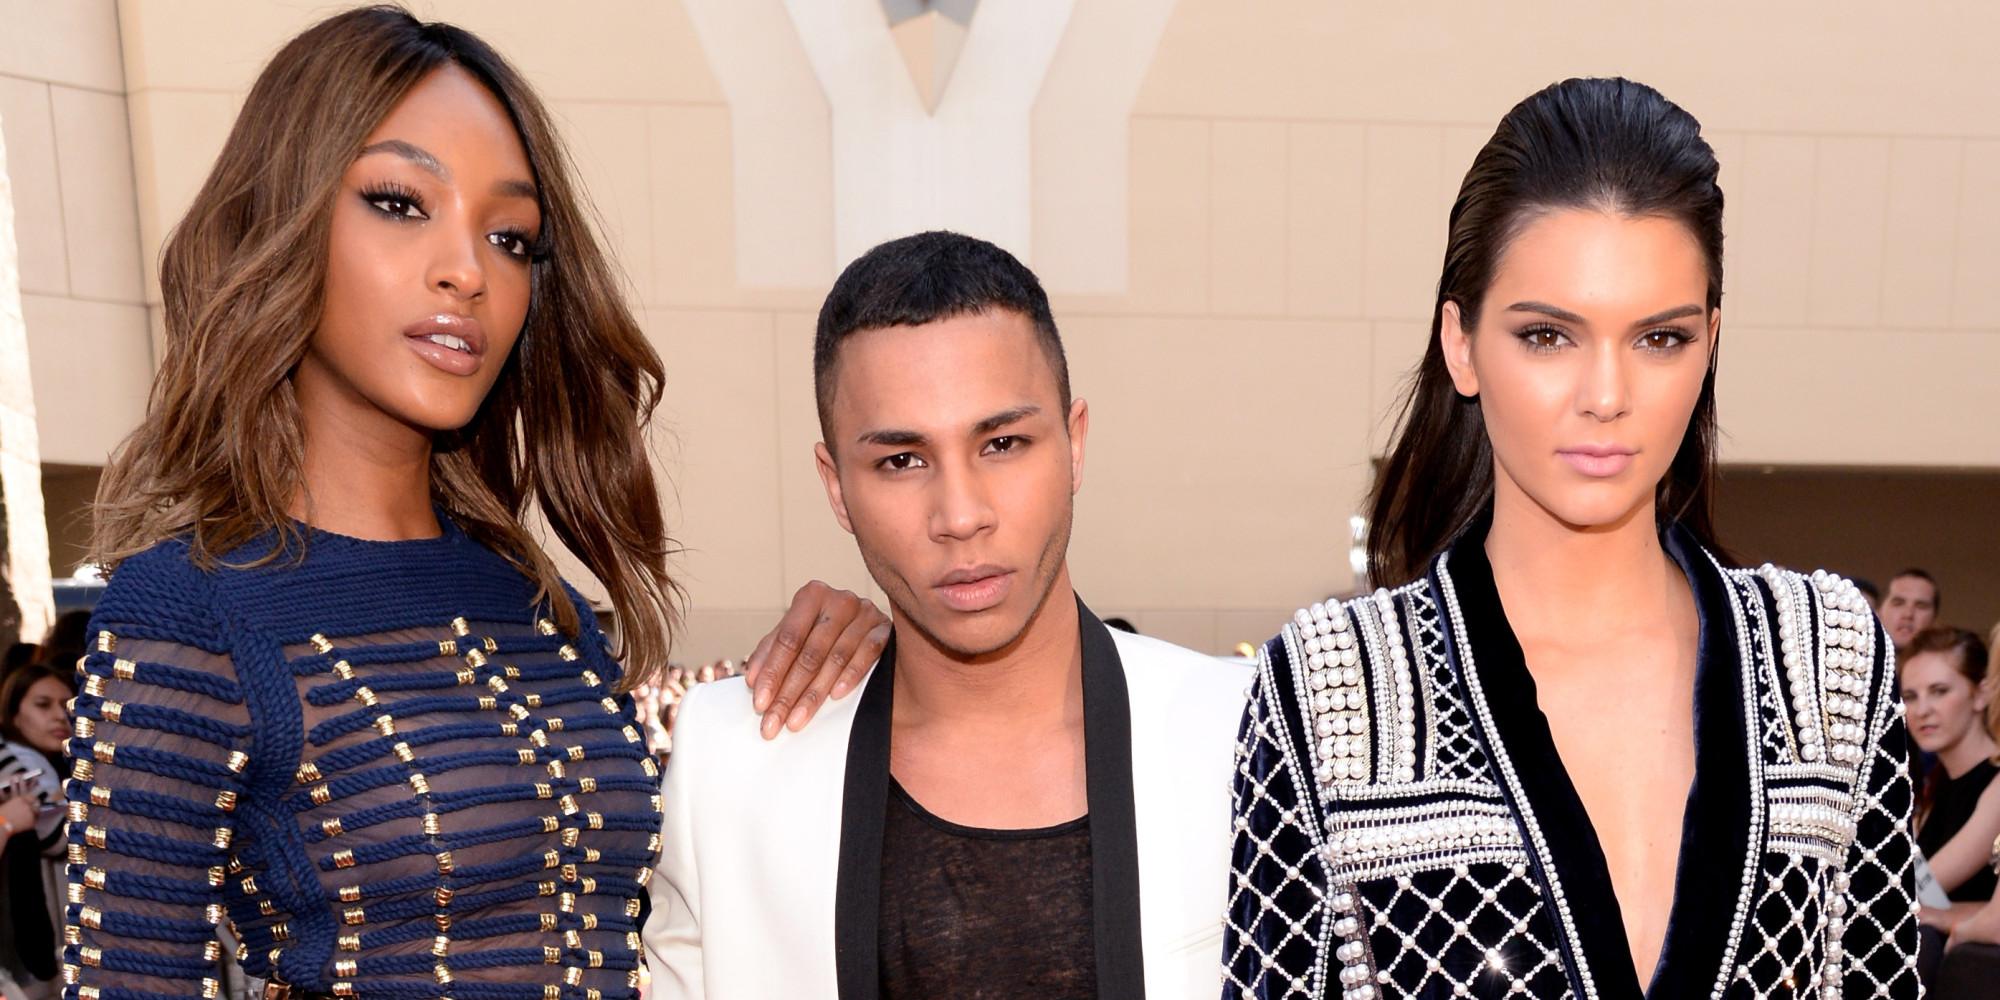 Olivier Rousteing Confirms